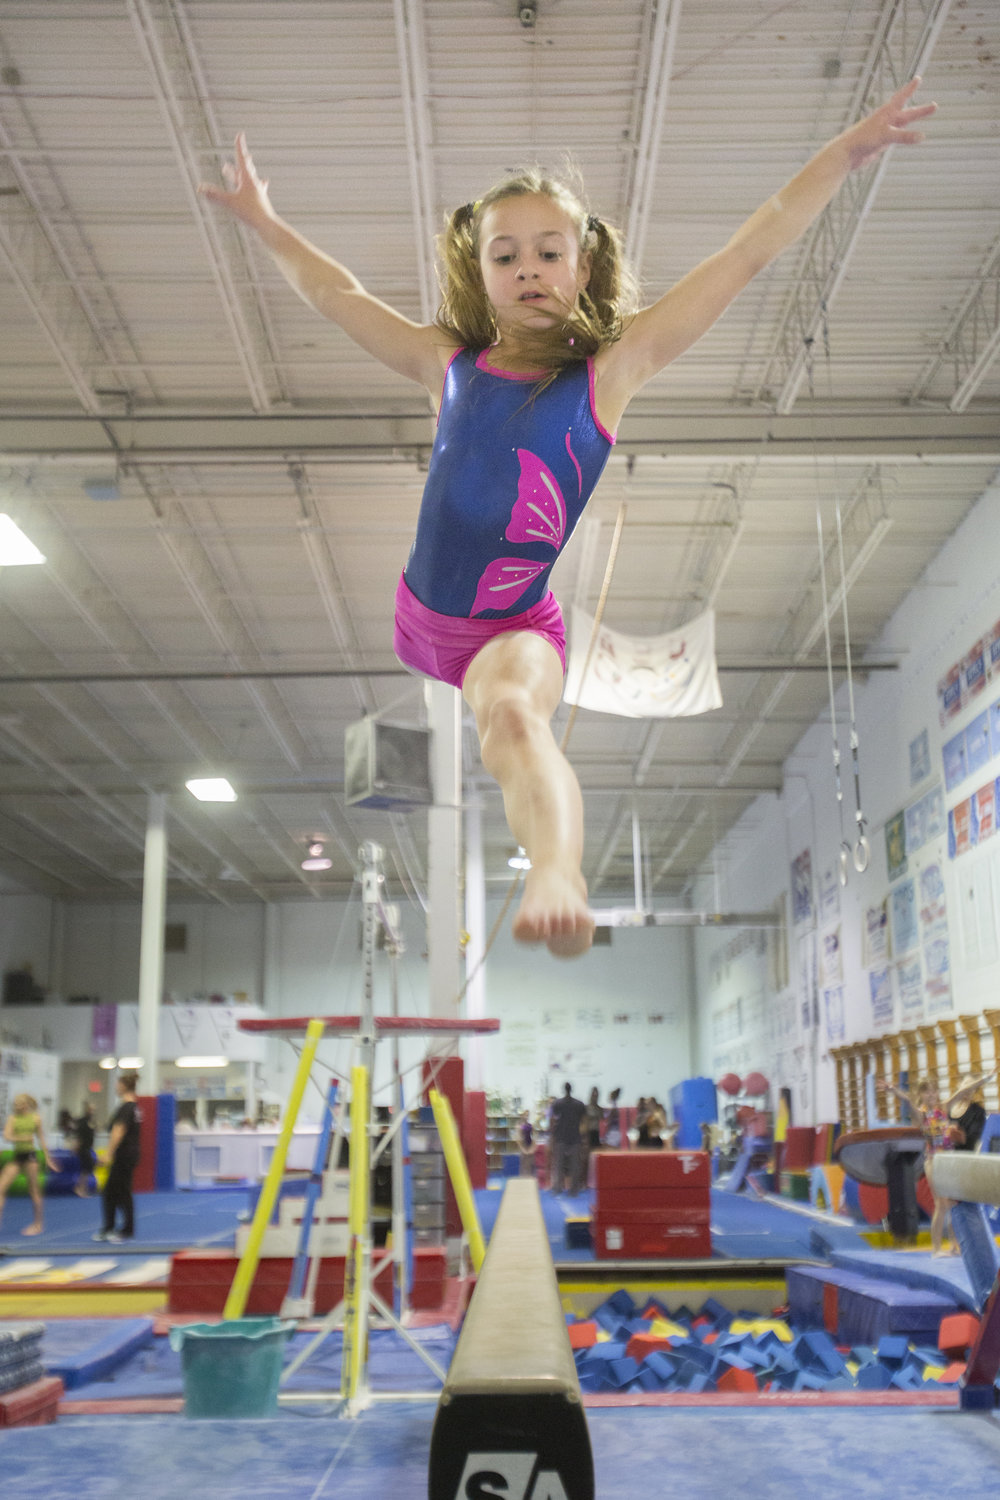 Maddie Maas leaps on the beam as she performs her routine during practice at Bright Raven Gymnastics Company in Rochester, N.Y. Oct. 28, 2014.